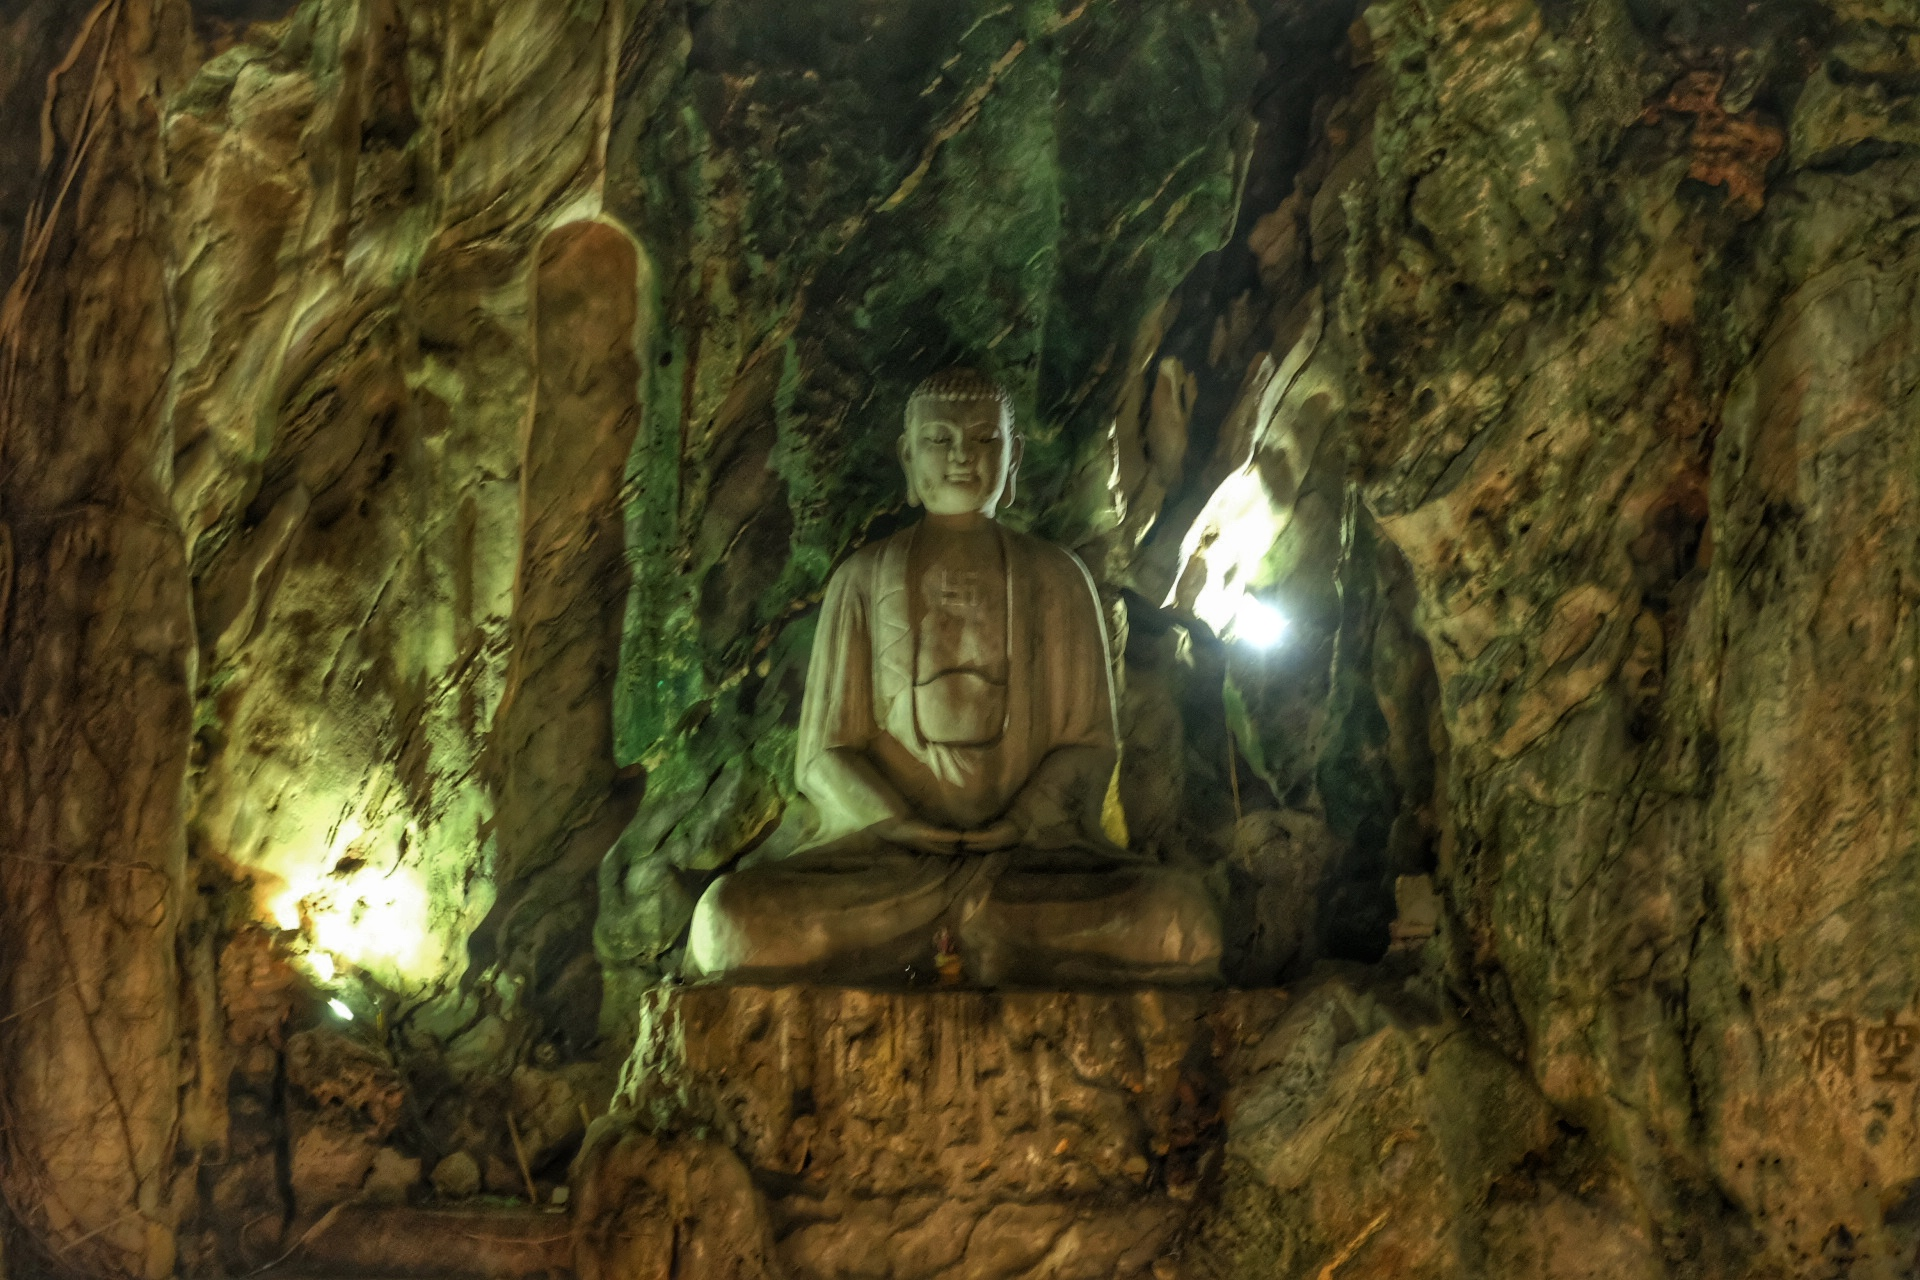 Buddha cave at the marble mountain.